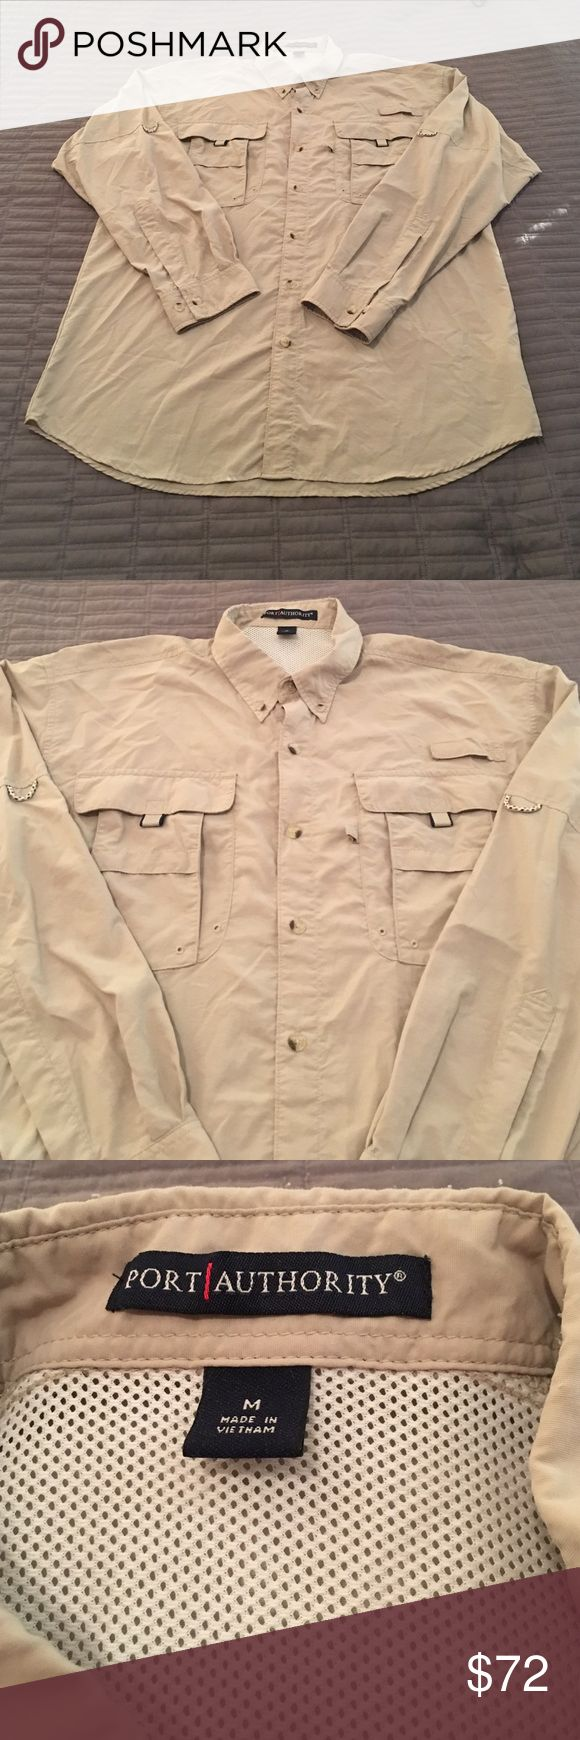 🐠SALE🐠 Port Authority light weight shirt Tan shirt for fishing, camping, or any outdoor activity. It's light weight and has ventilation on the top back section. All button attached and included. There are two extra on the bottom front inside. Port Authority  Shirts